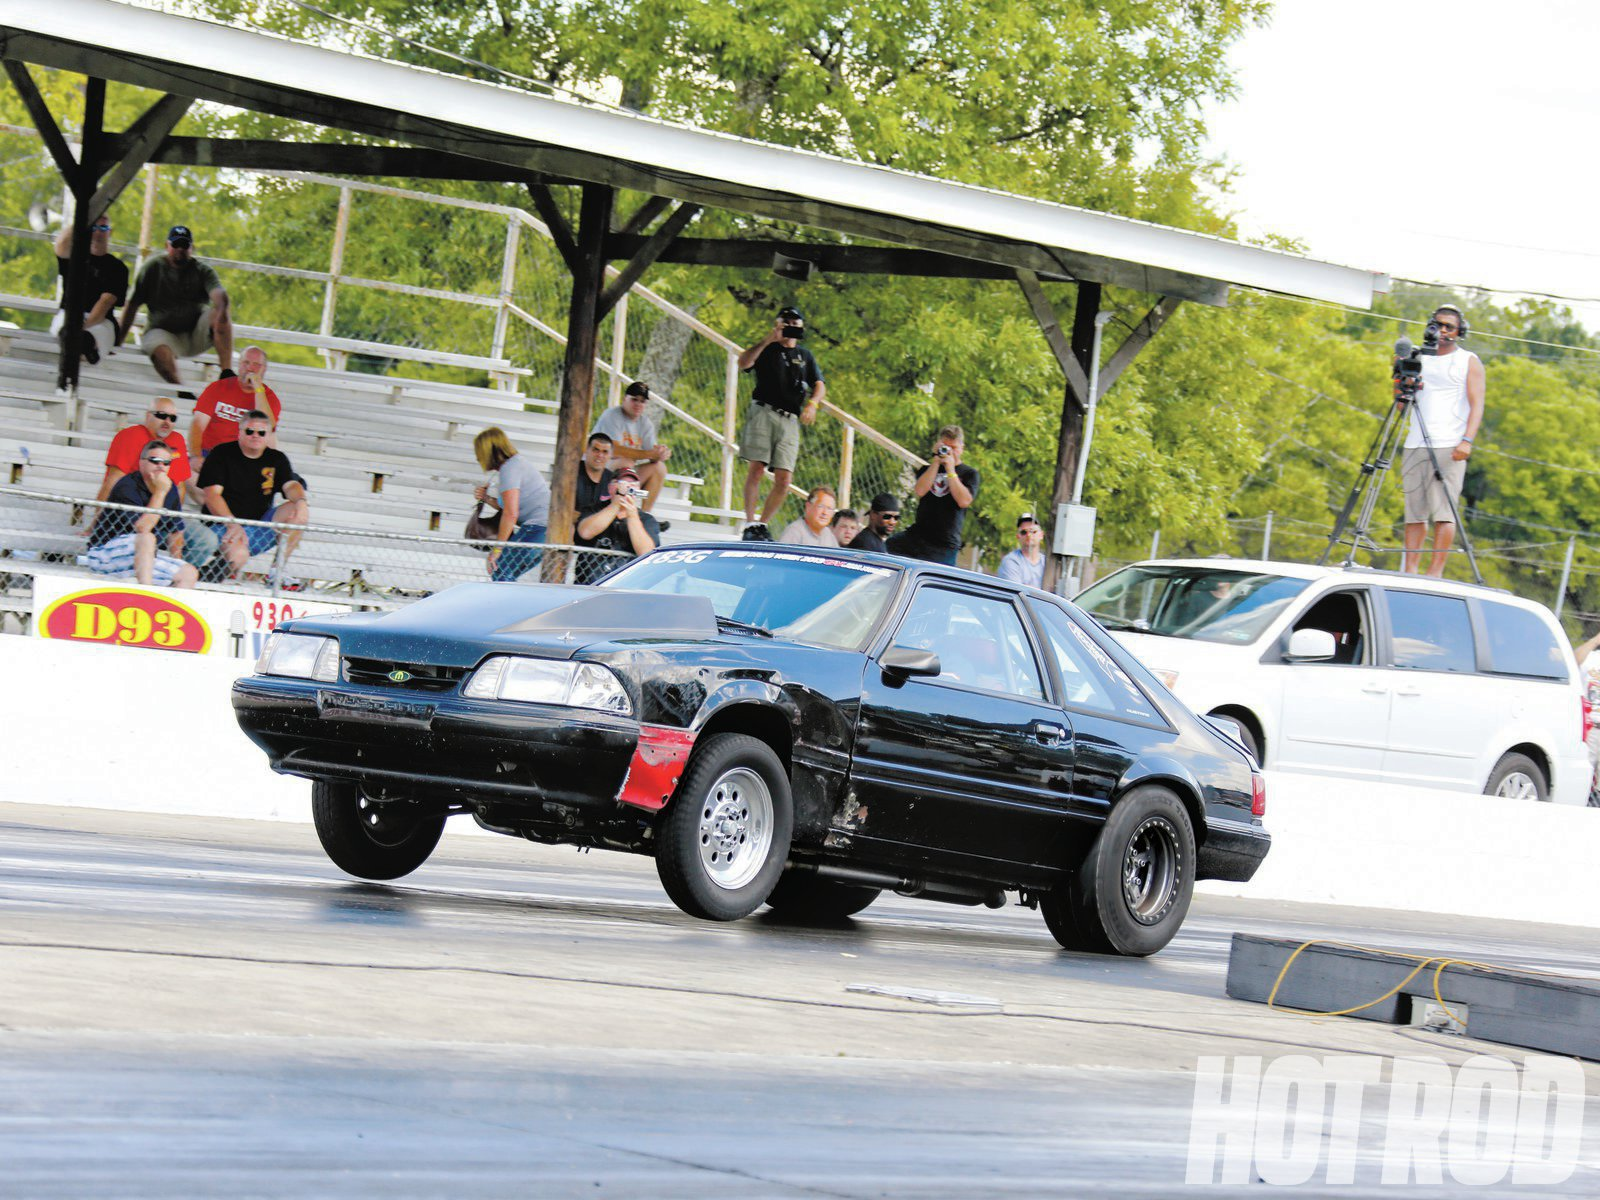 Dusty got some help along the way from fellow Drag Week™ competitor Rich Pedraza, as well as Mike Swan from Mooresville, Indiana, who helped secure a new front wheel. The damage from his shredded tire is visible on the driver-side fender and door.